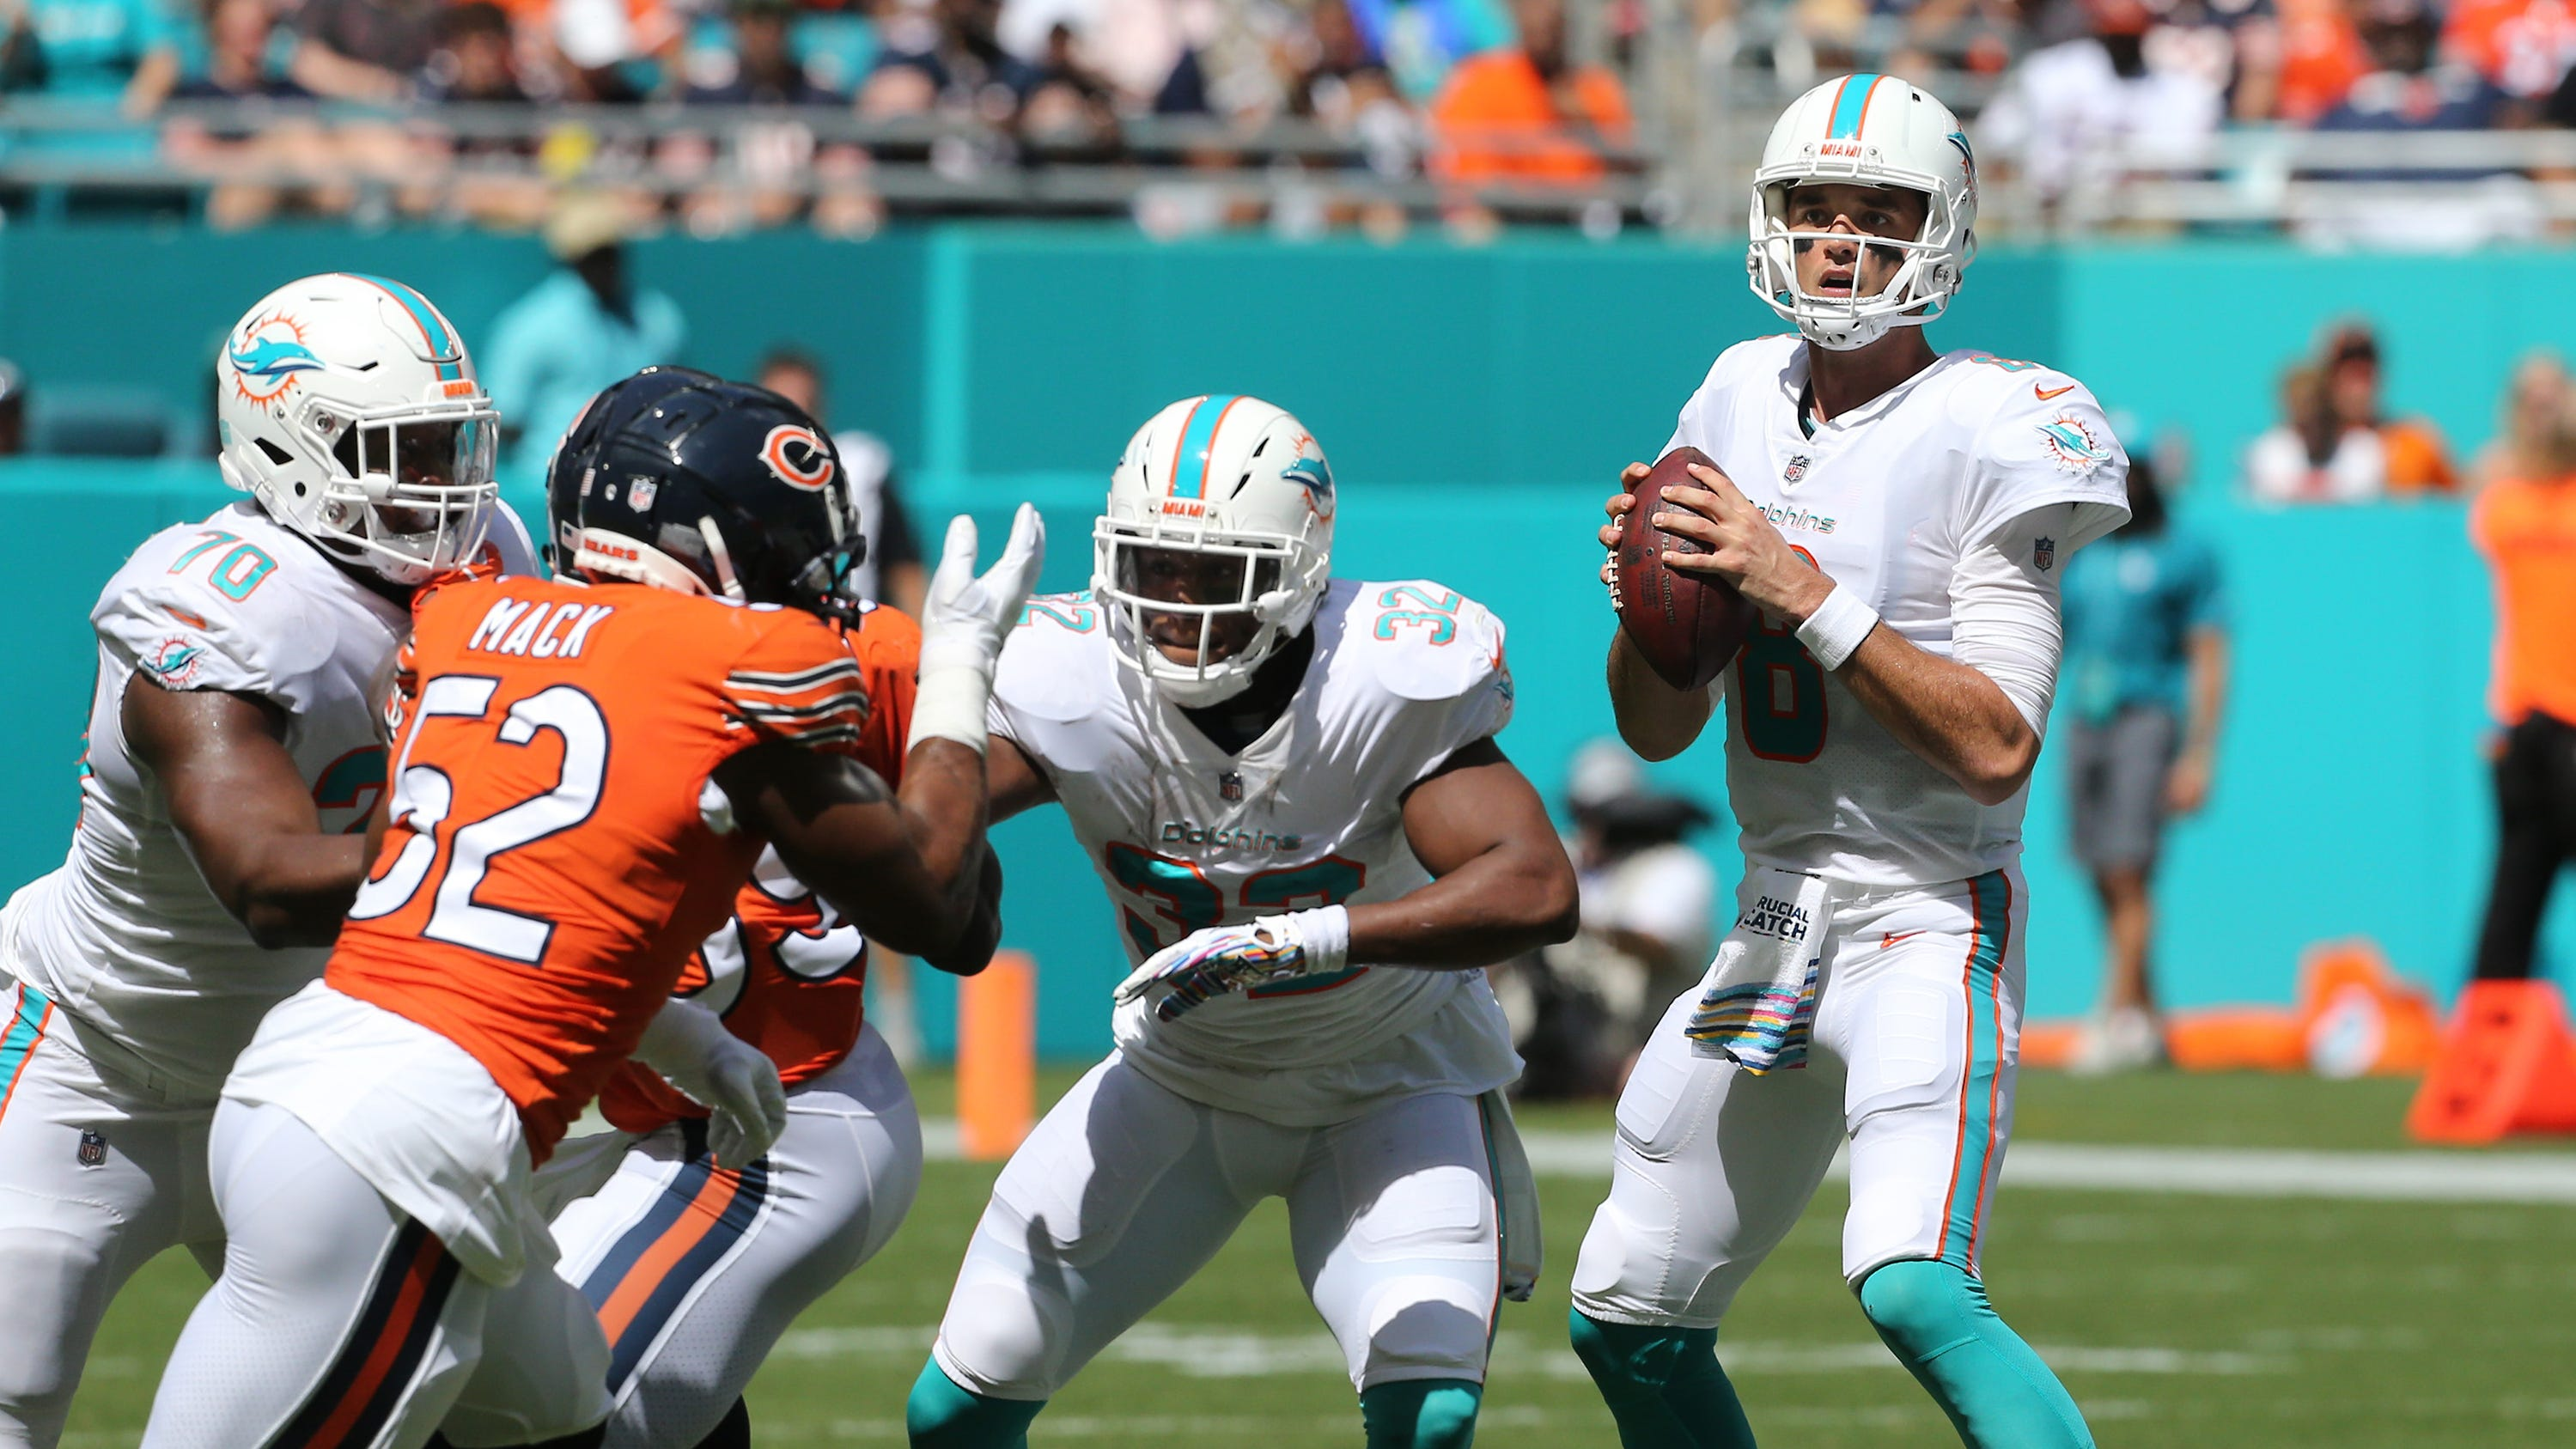 View from the other side: Lions at Dolphins